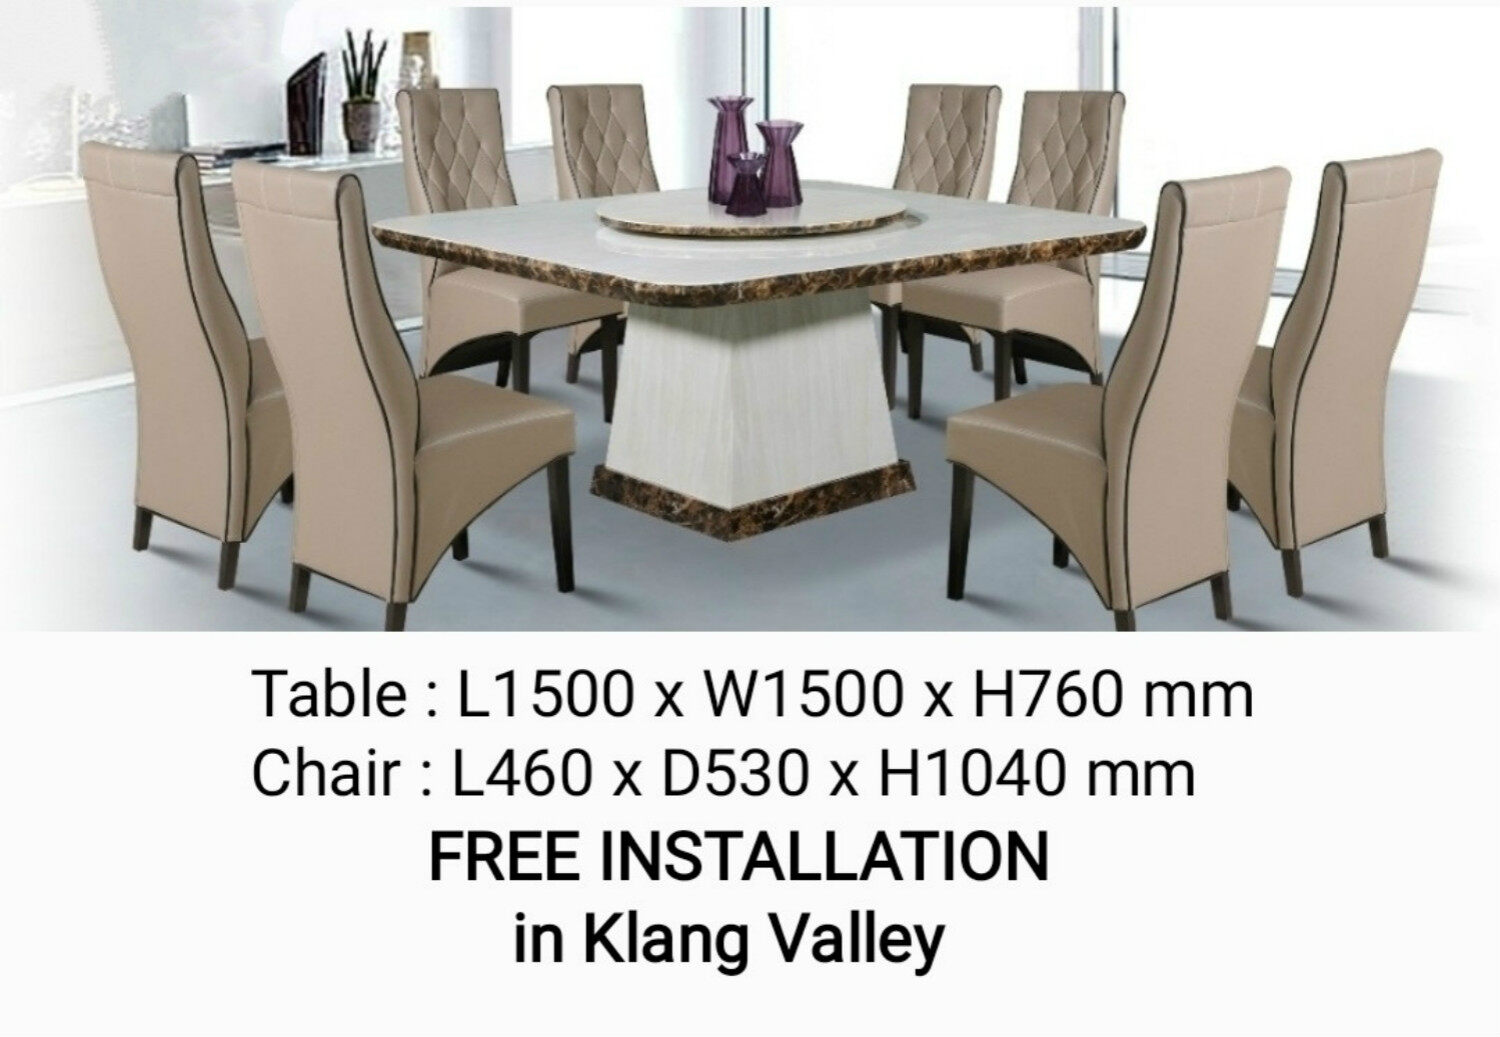 Marble Dining Table 8 Seater Price Promotion May 2021 Biggo Malaysia